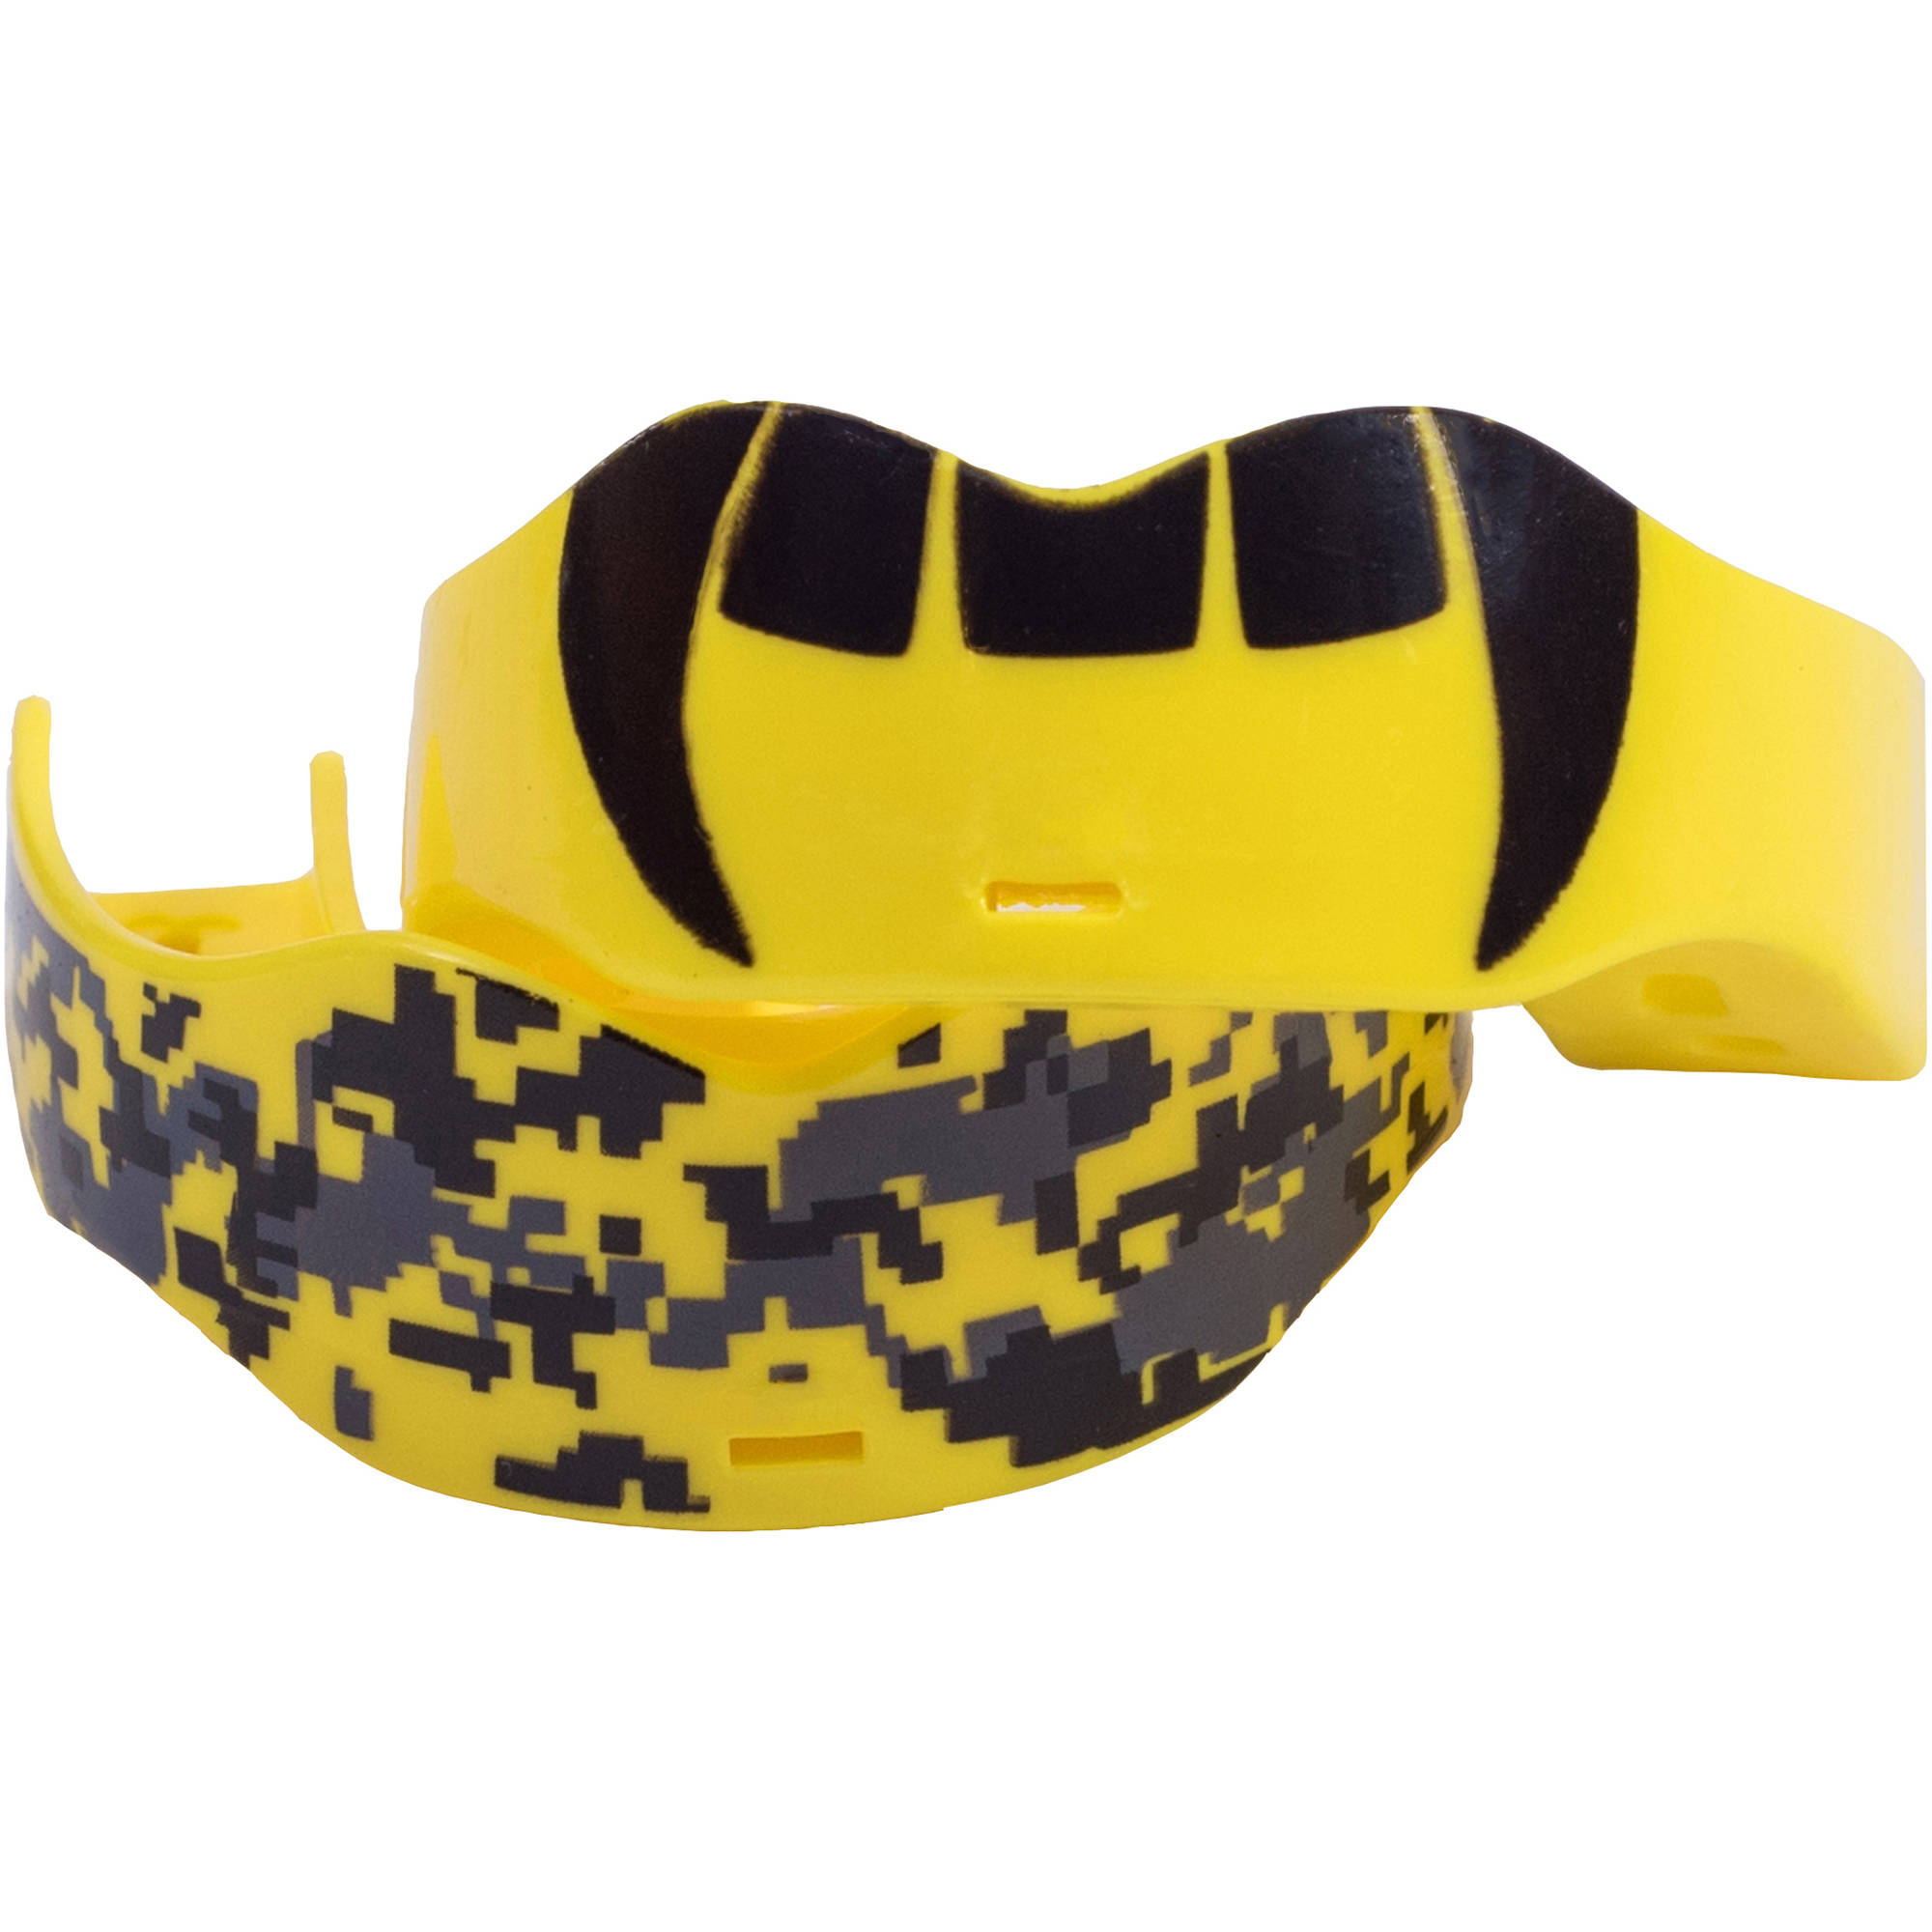 Soldier Sports Custom 7312 Mouthguard, Yellow